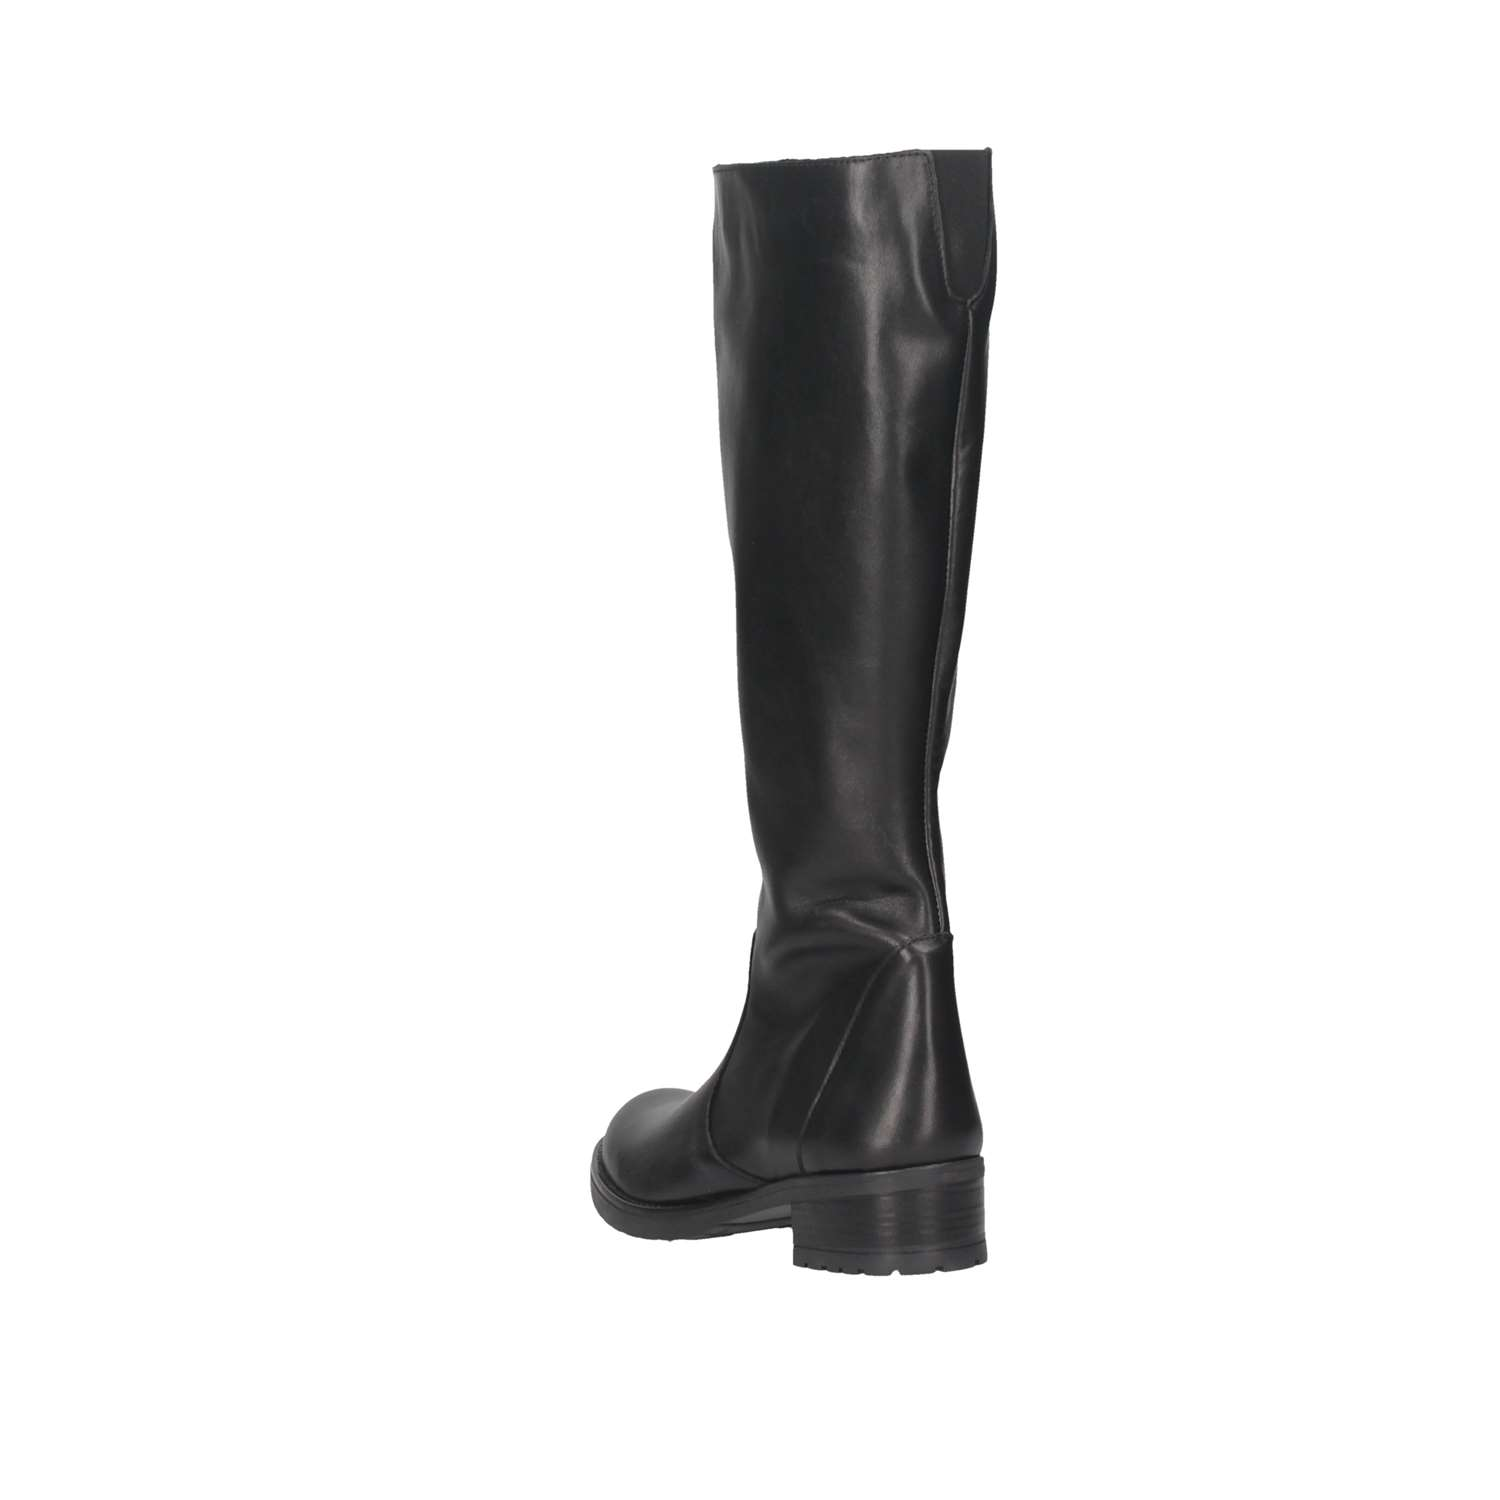 108 Made Aux Hiver Femmes Noir Bottes Automne Bage In Italy wYp6x